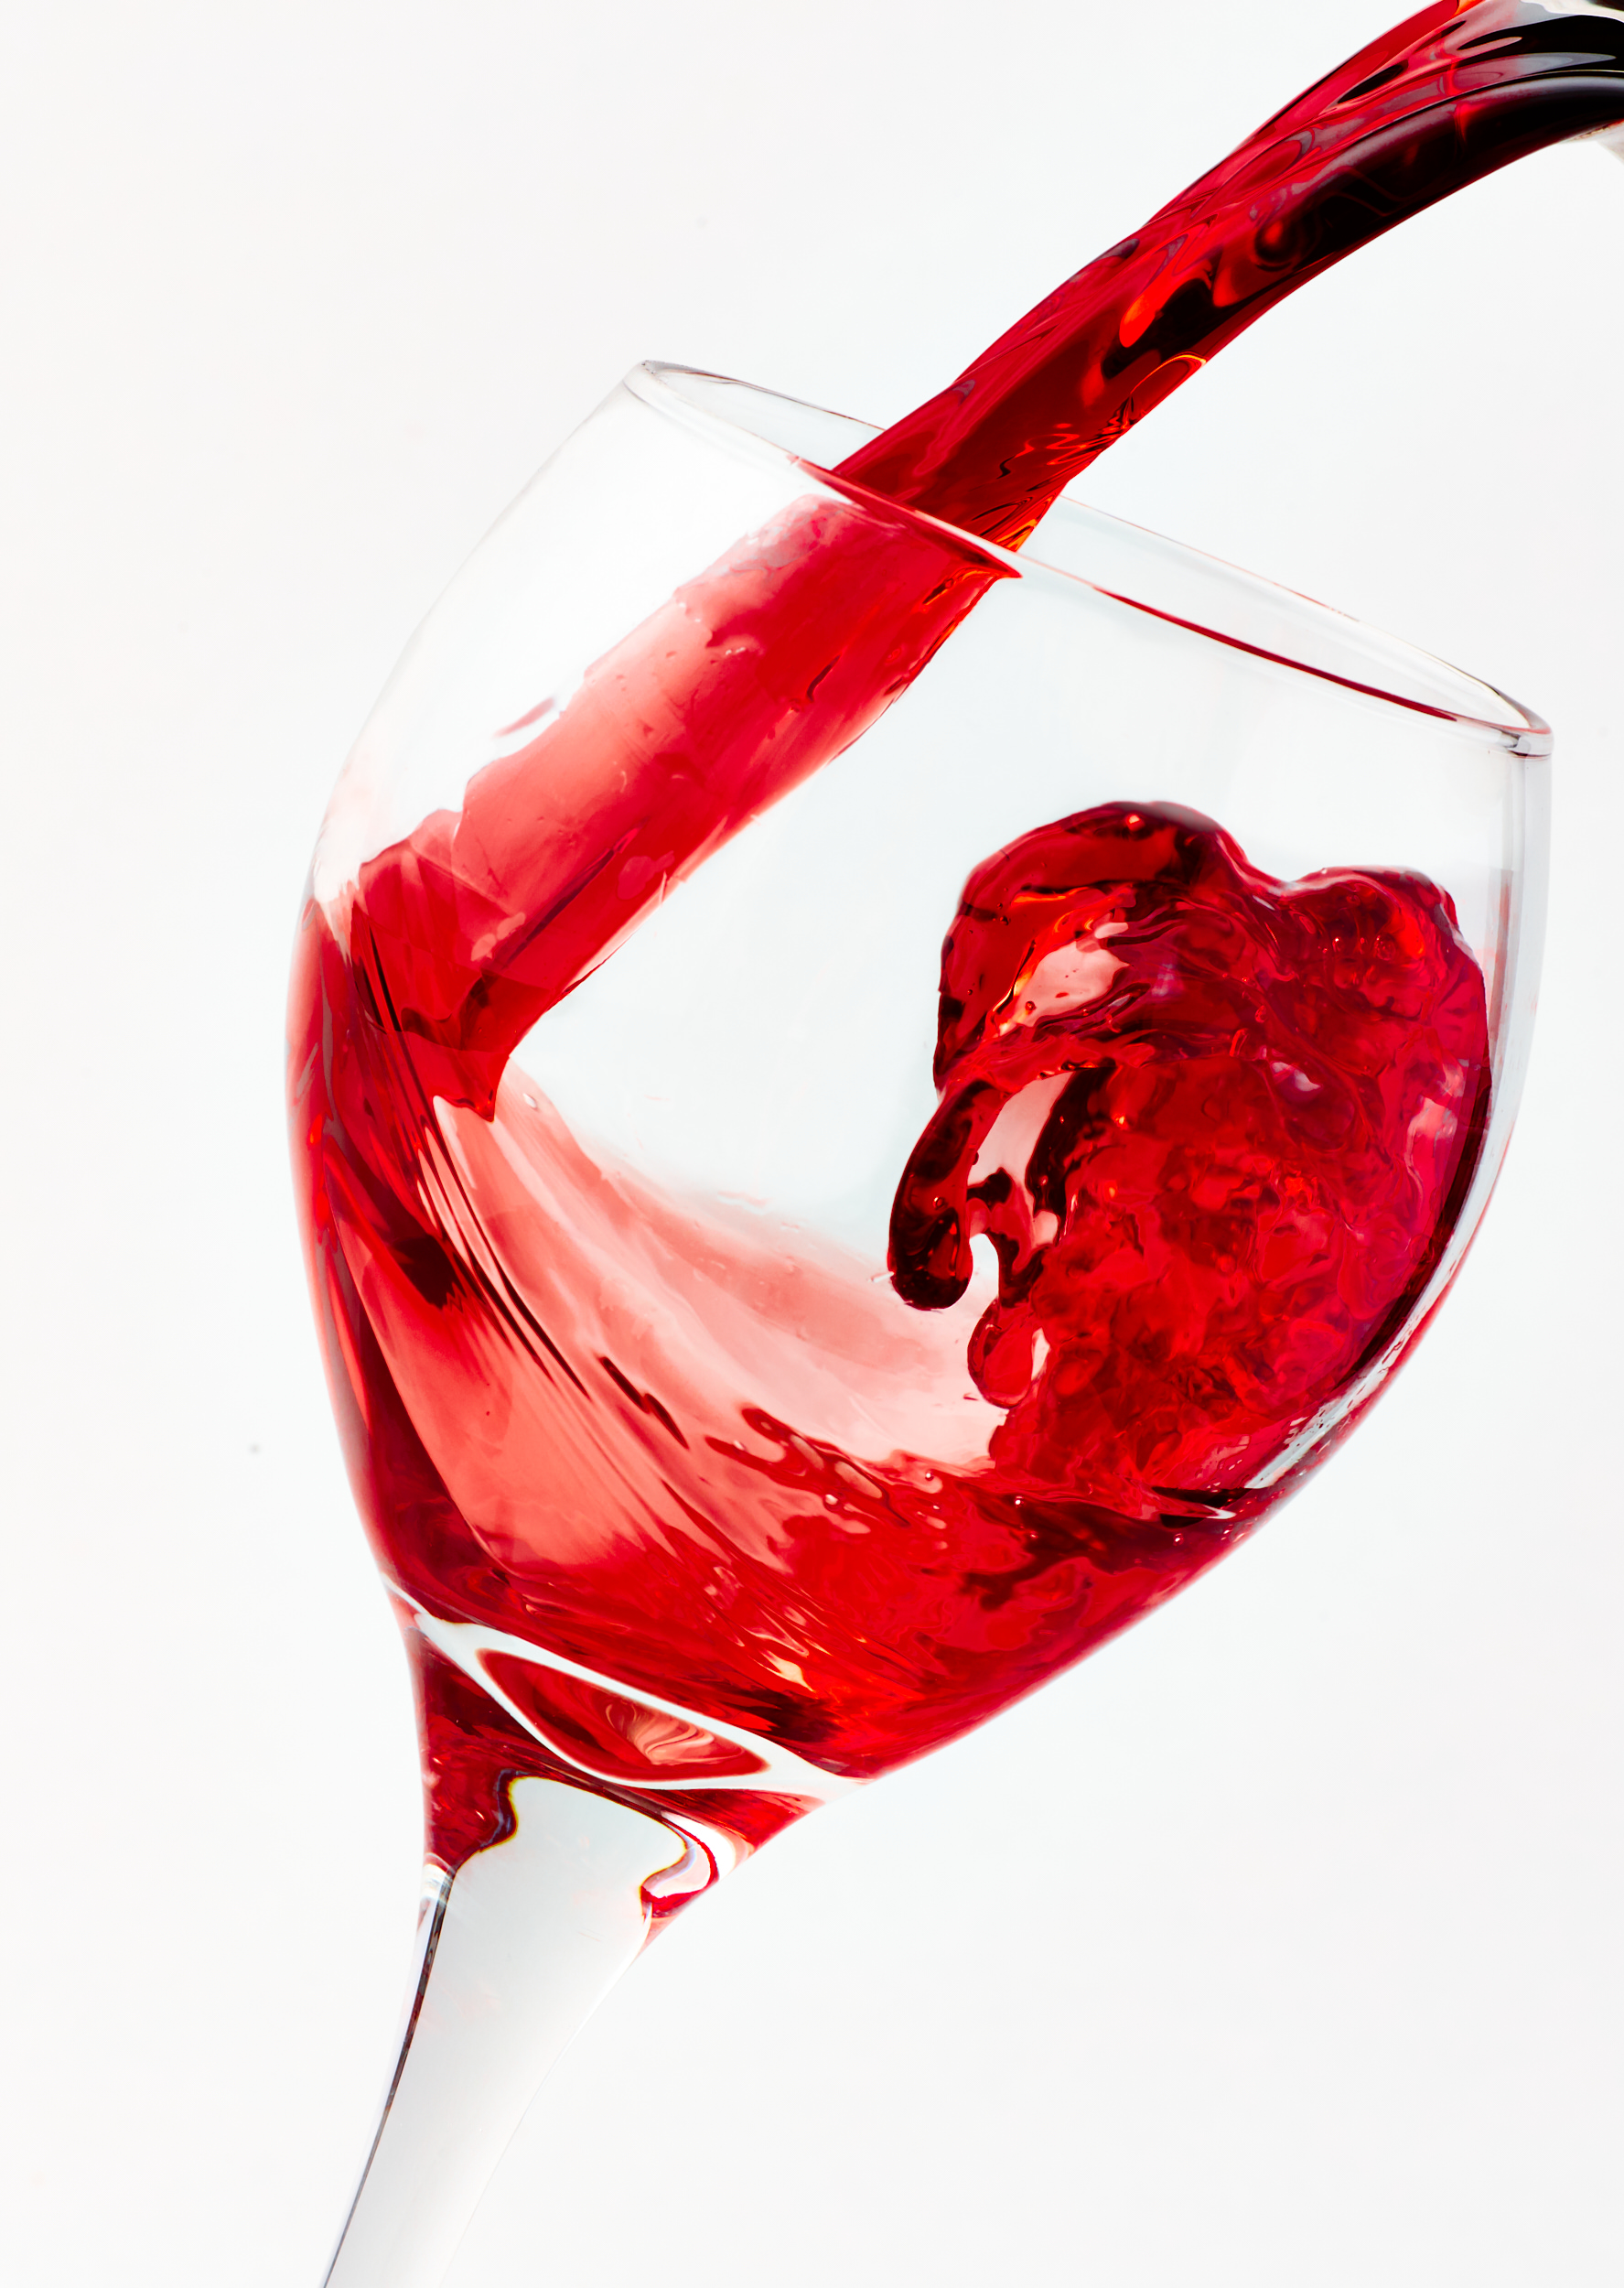 Professional picture of red wine pouring into a glass.